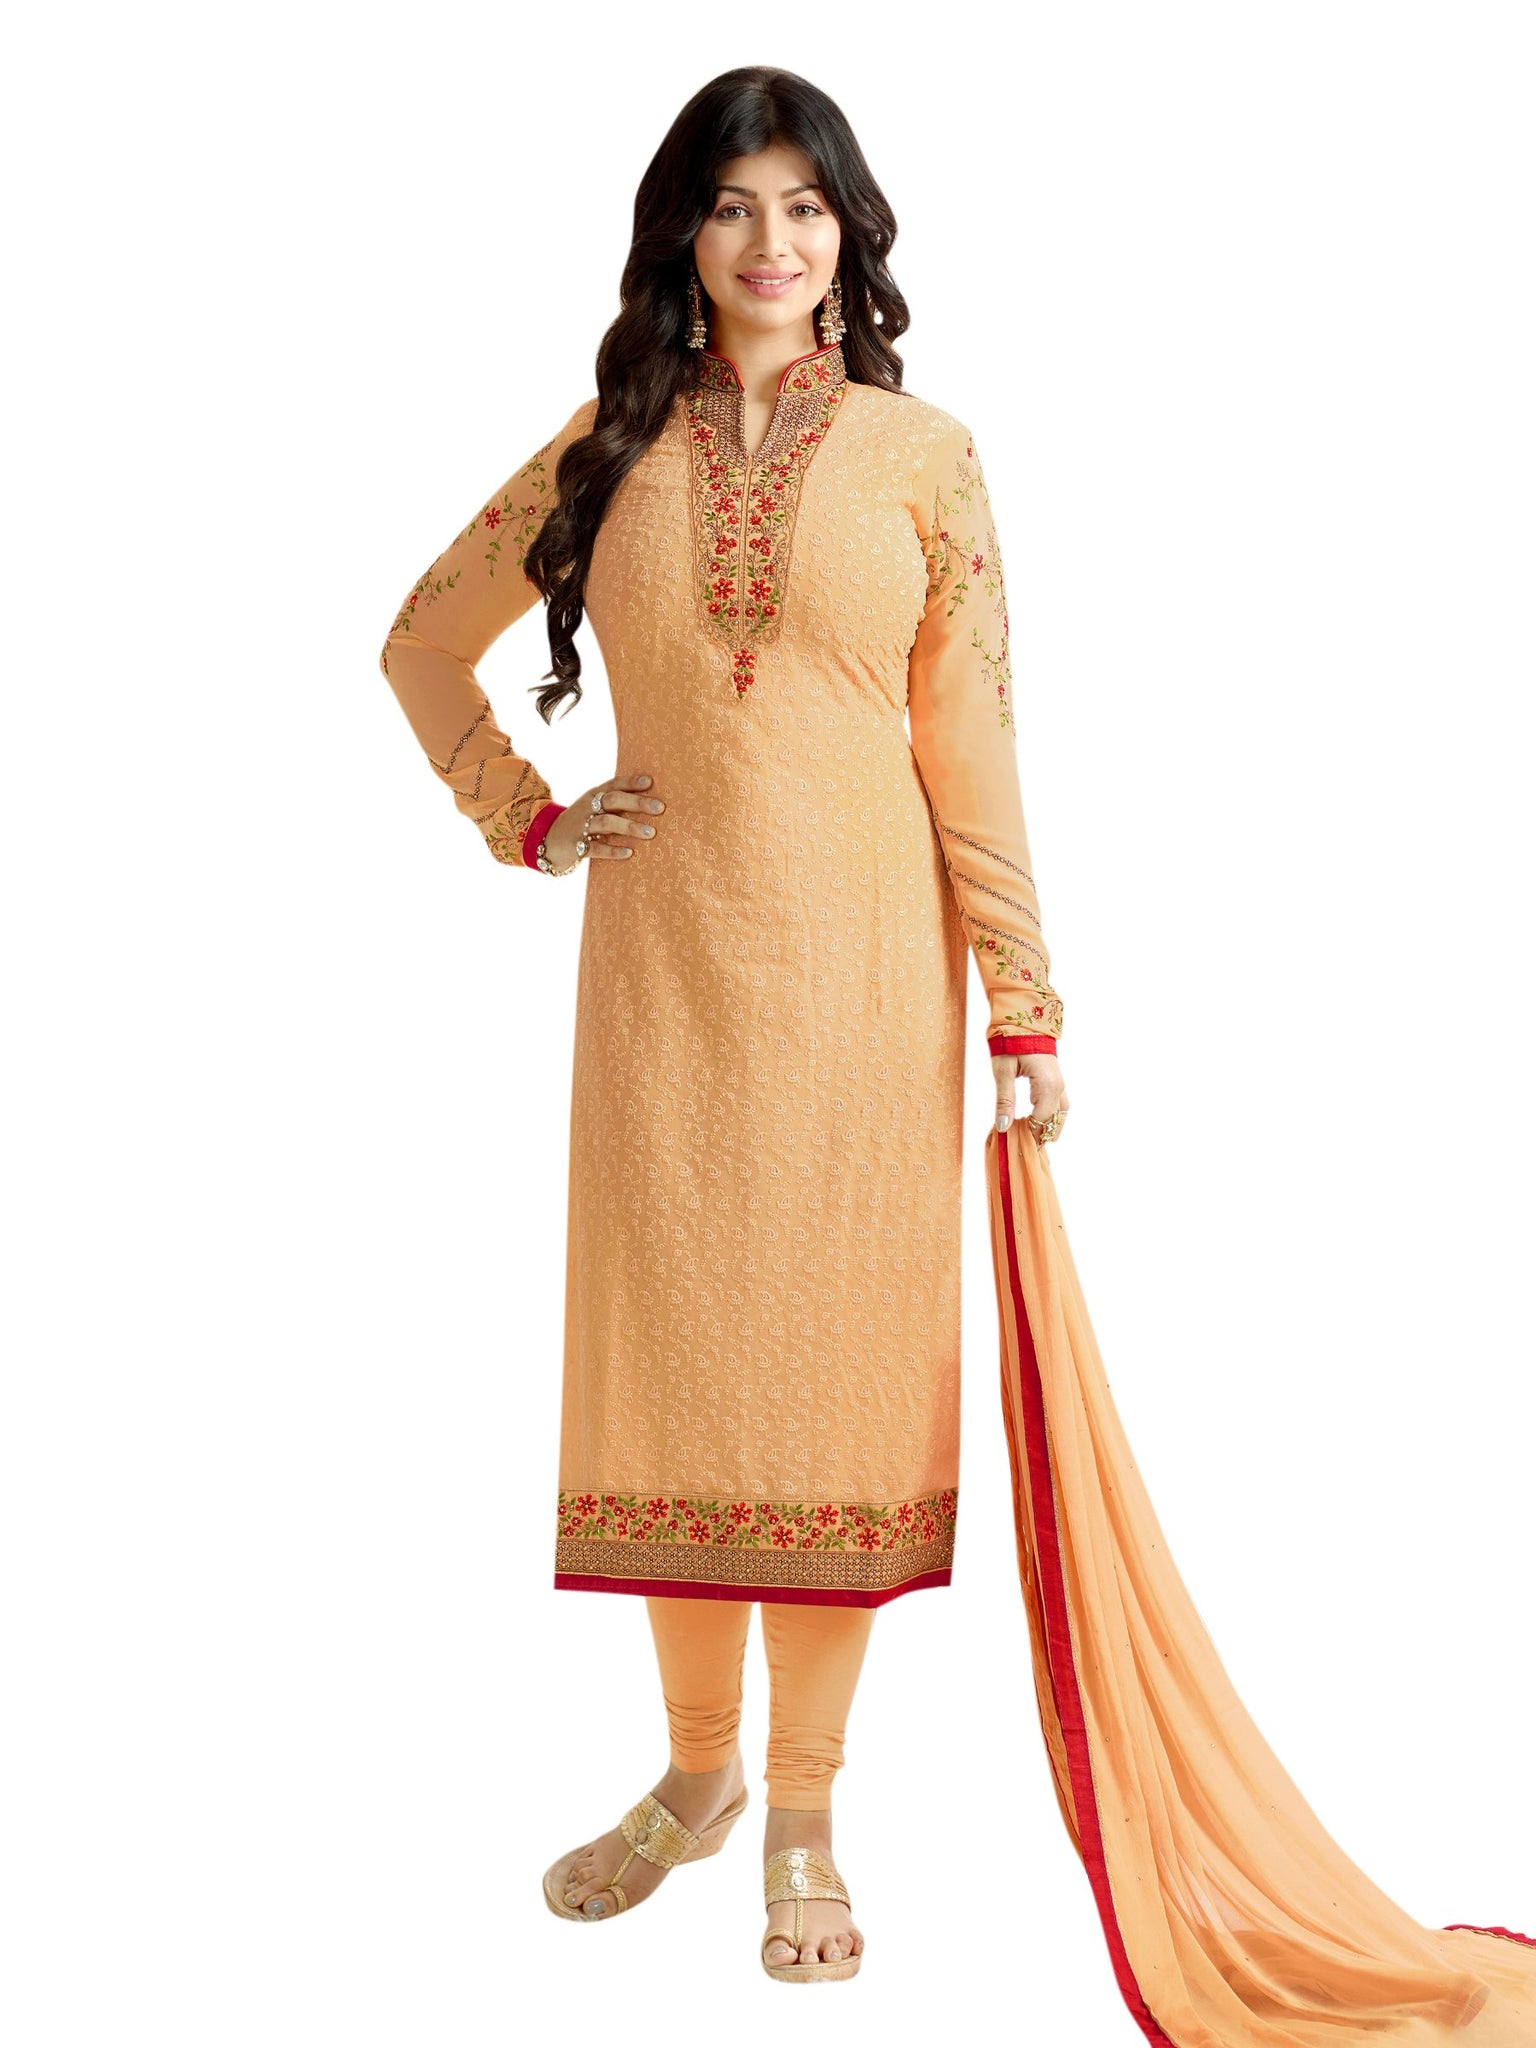 Styleez Salwar Kameez 210 All Over Floral Chikan Work With Traditional Jardoshi Work